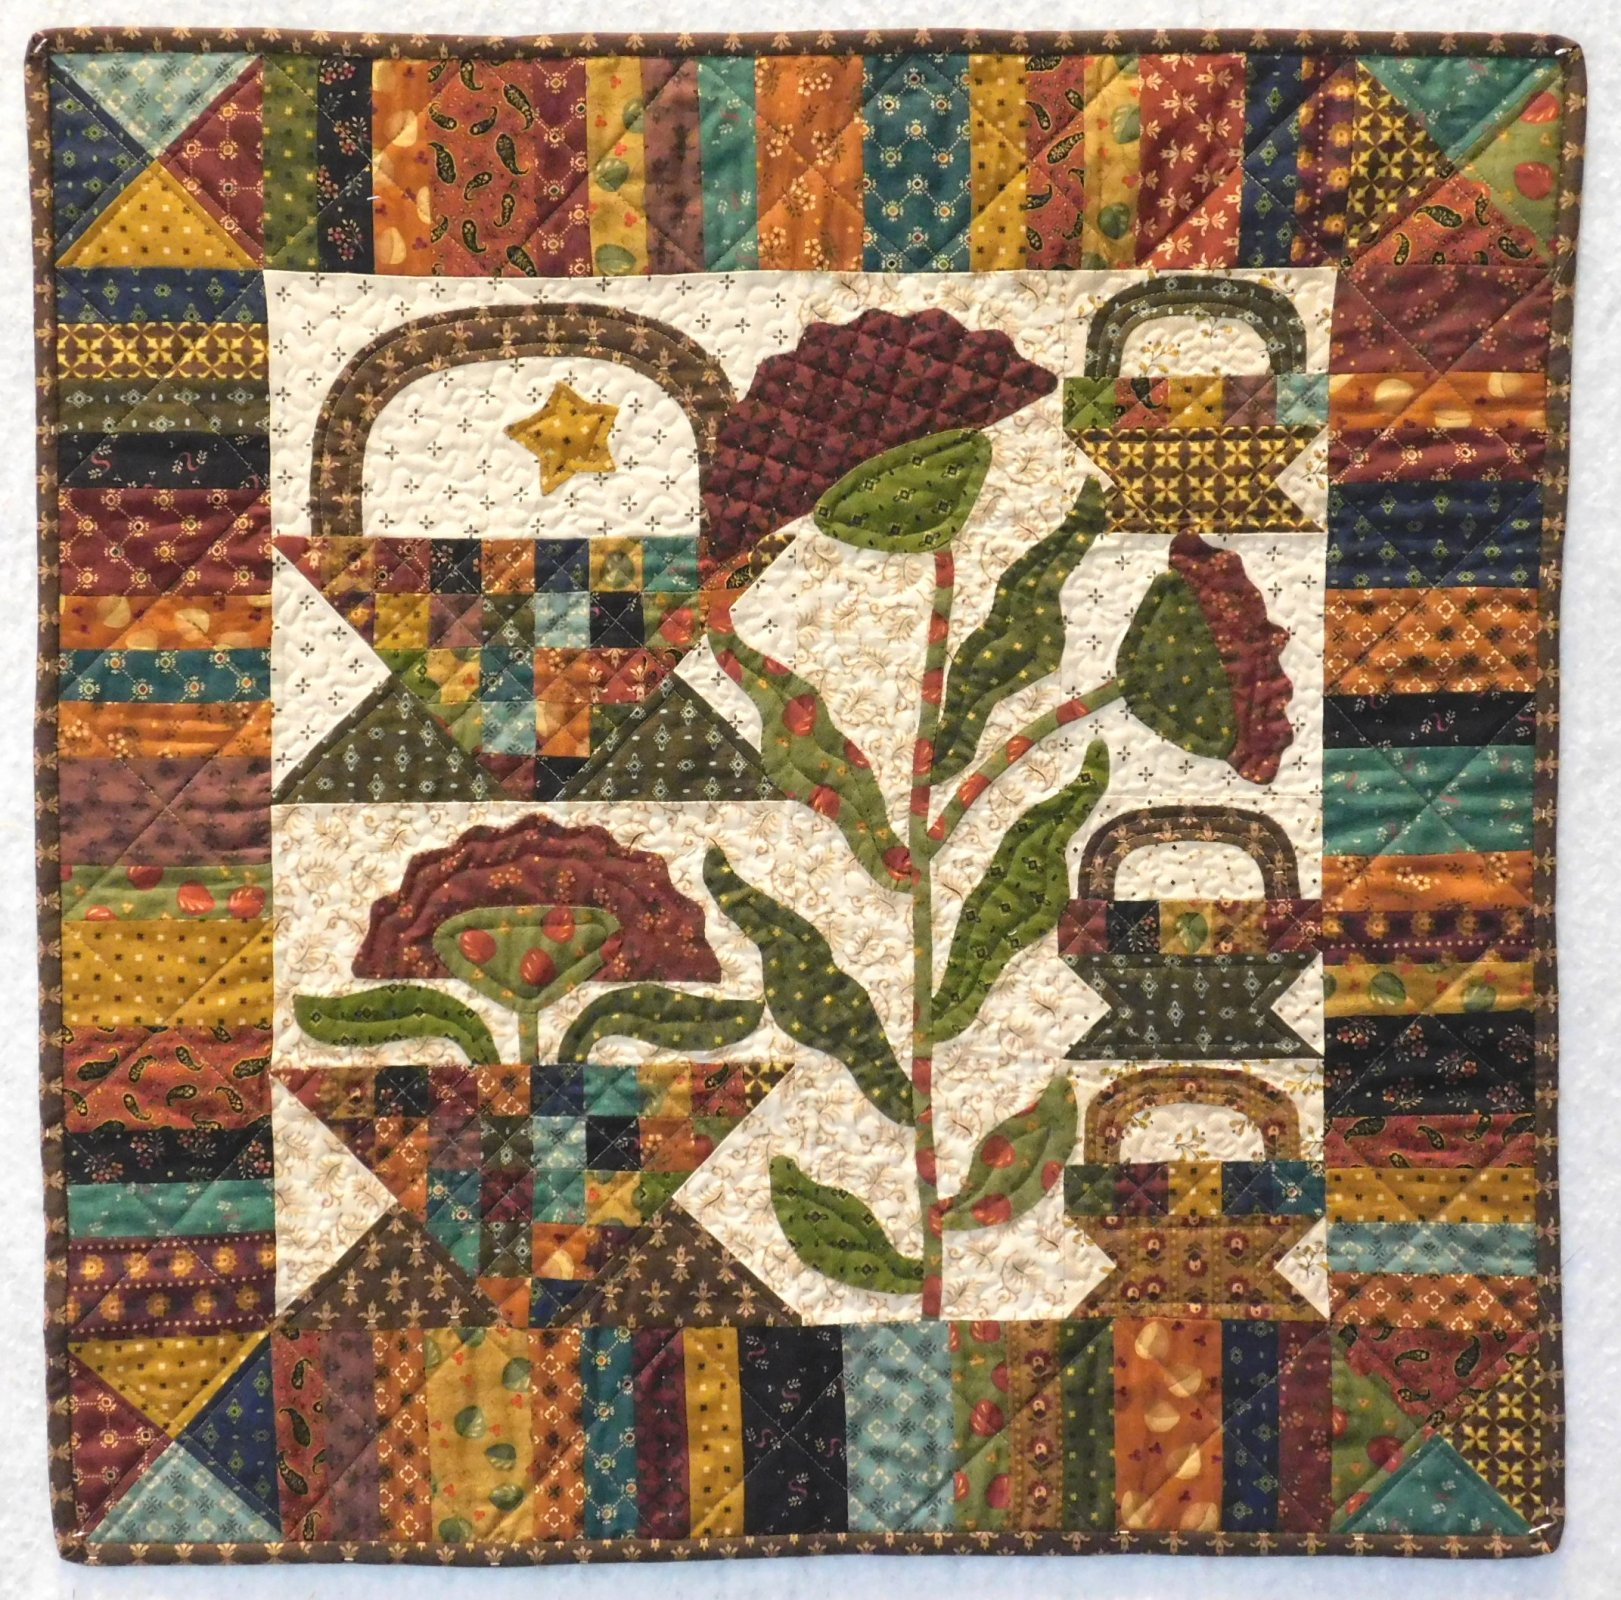 Simple Whatnots 8 - Potting Shed - Quilt Kit - 28.5 x 28.5